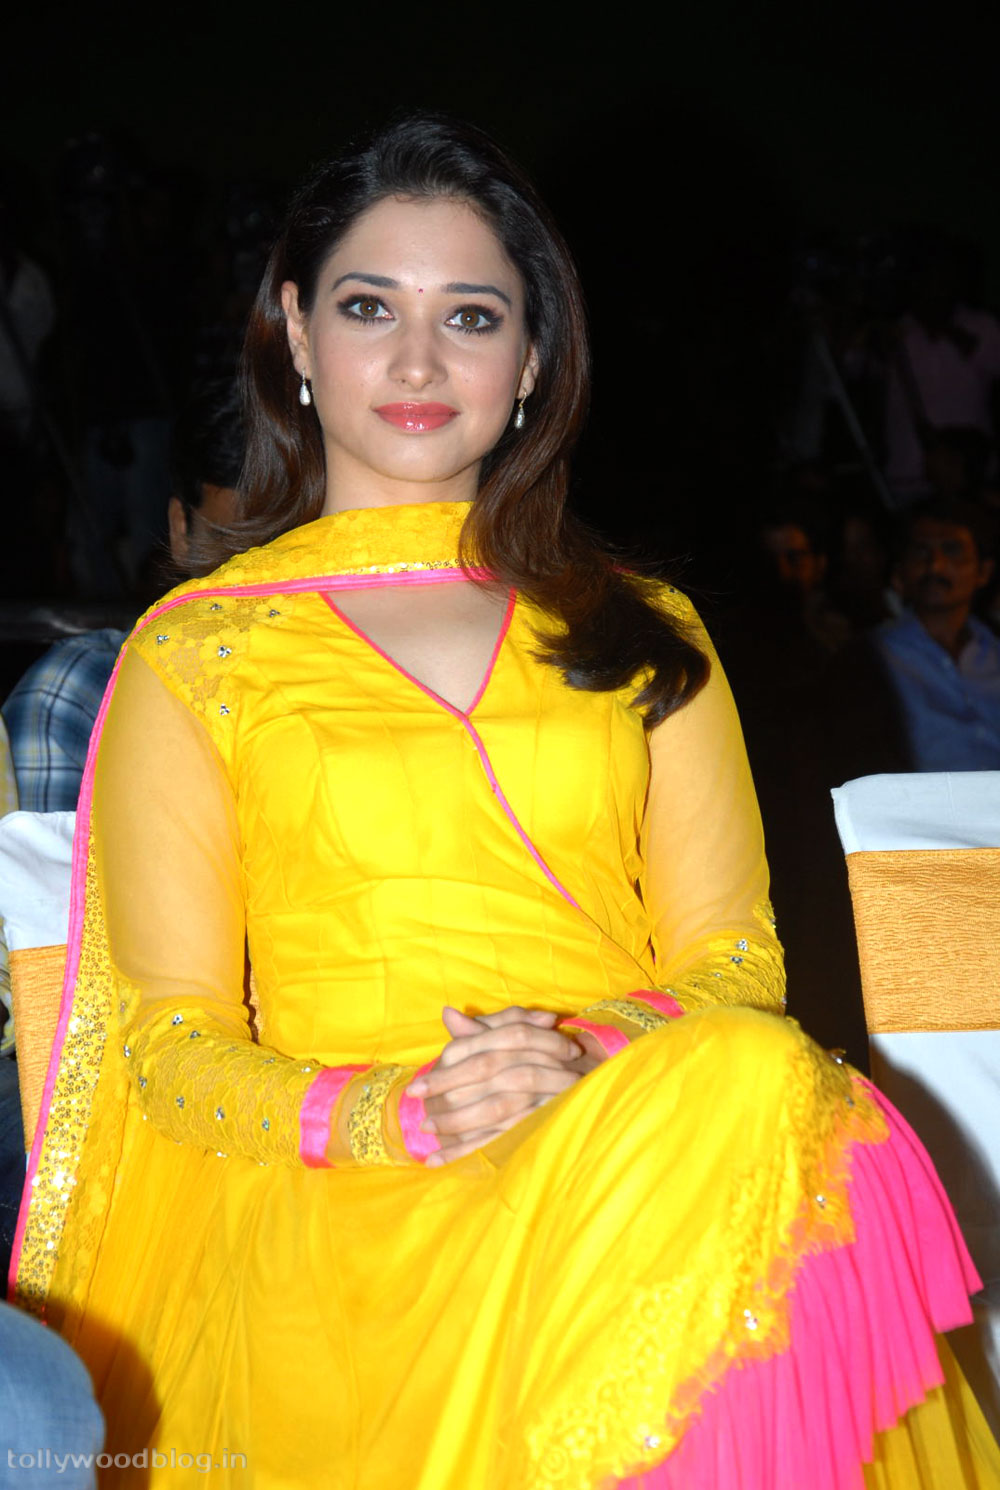 Tamanna Home: Tamanna Photos At Mr Pellikoduku Audio Launch -Wallpapers